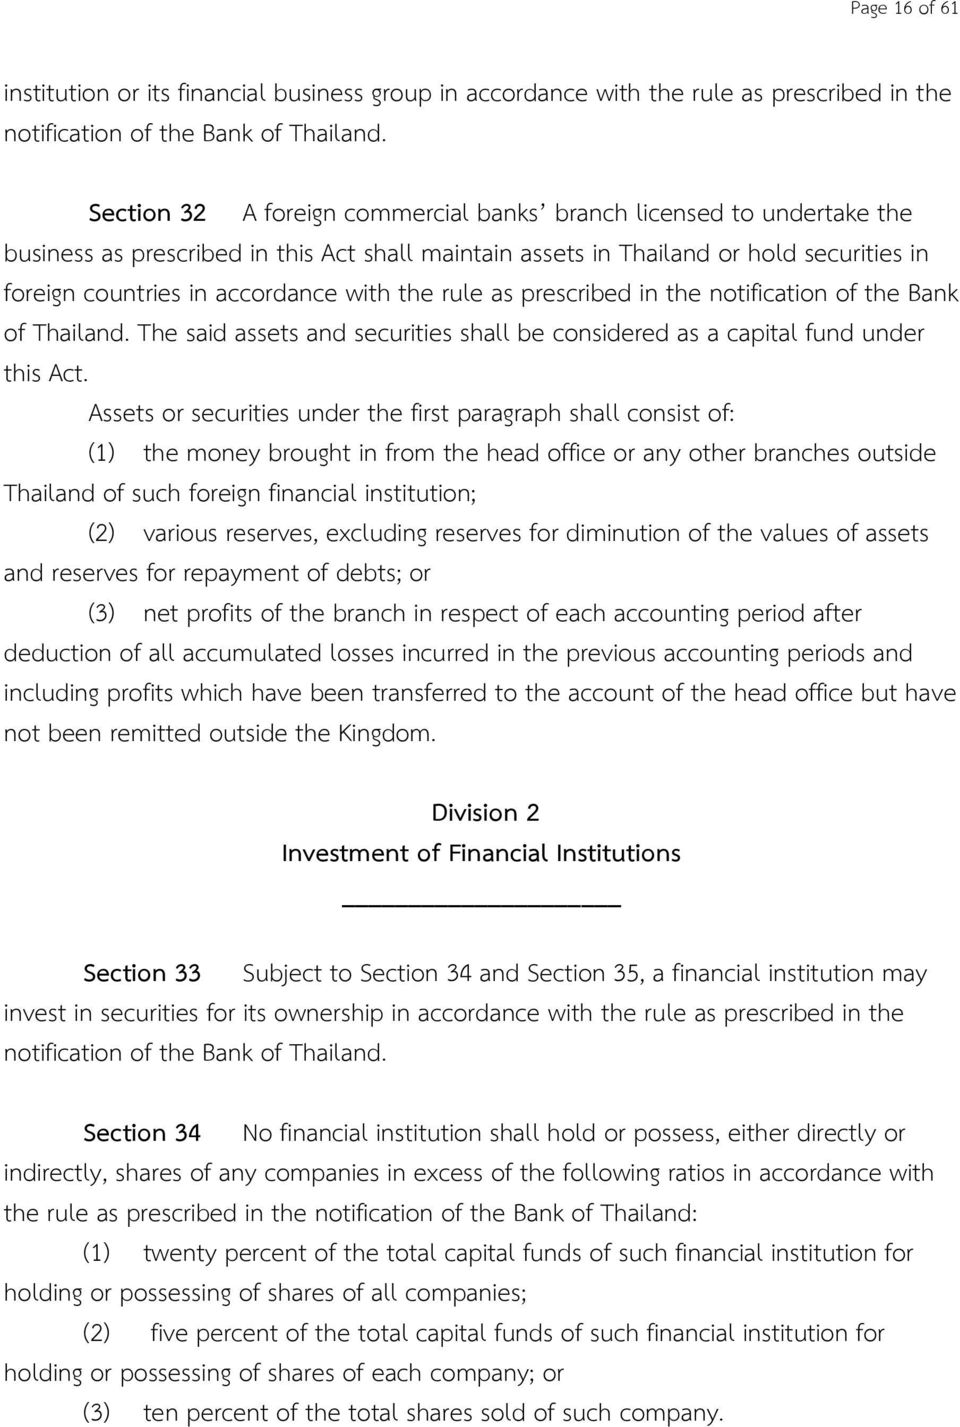 the rule as prescribed in the notification of the Bank of Thailand. The said assets and securities shall be considered as a capital fund under this Act.